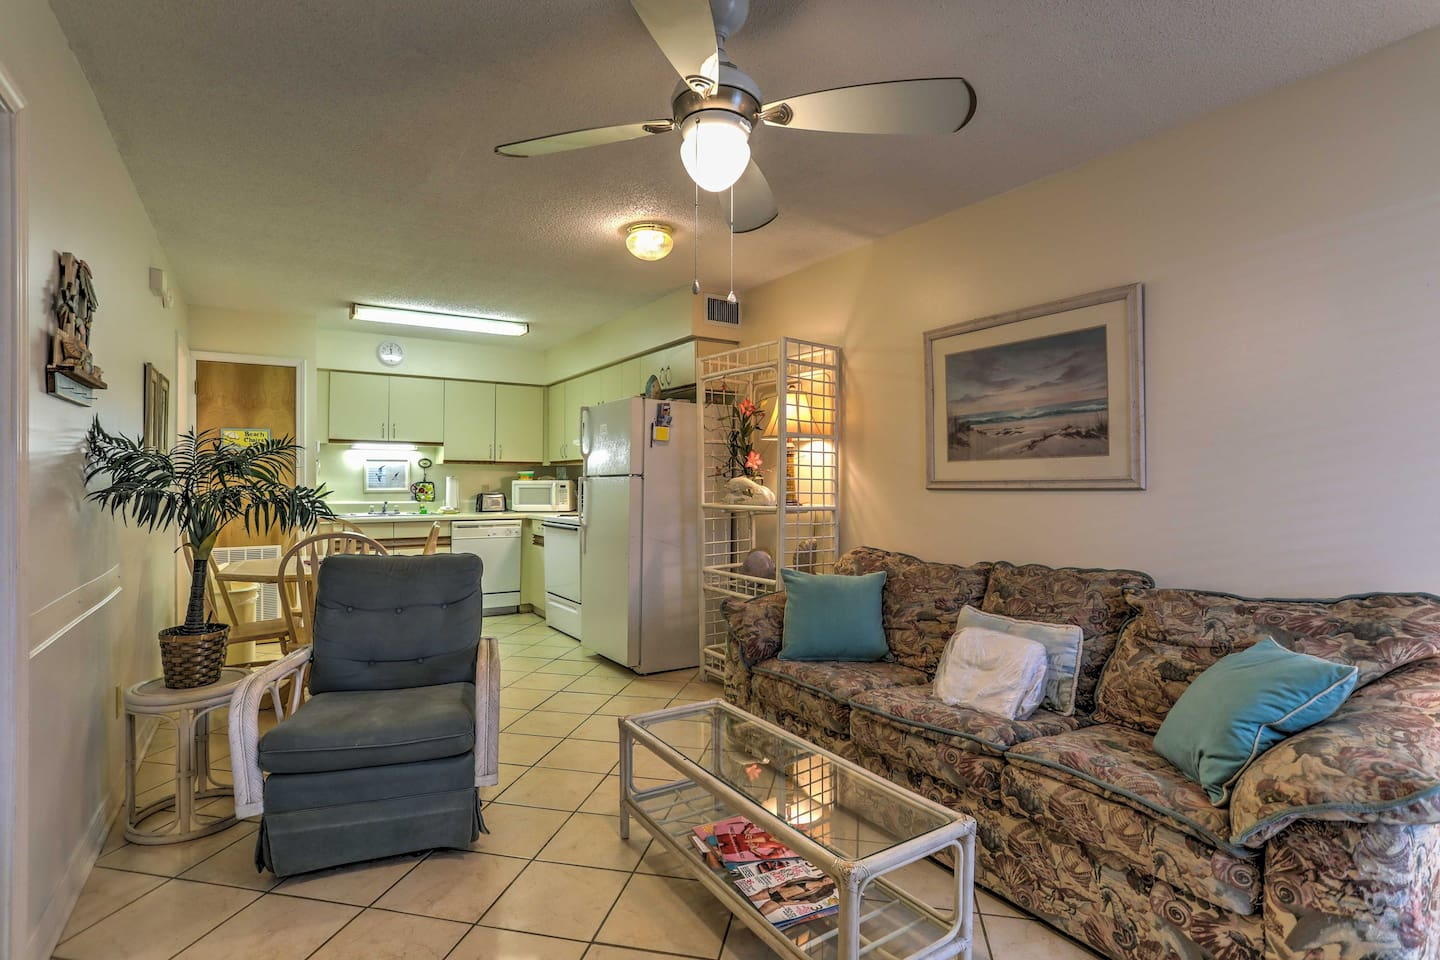 new 1br gulf shores condo steps from the shore condominiums